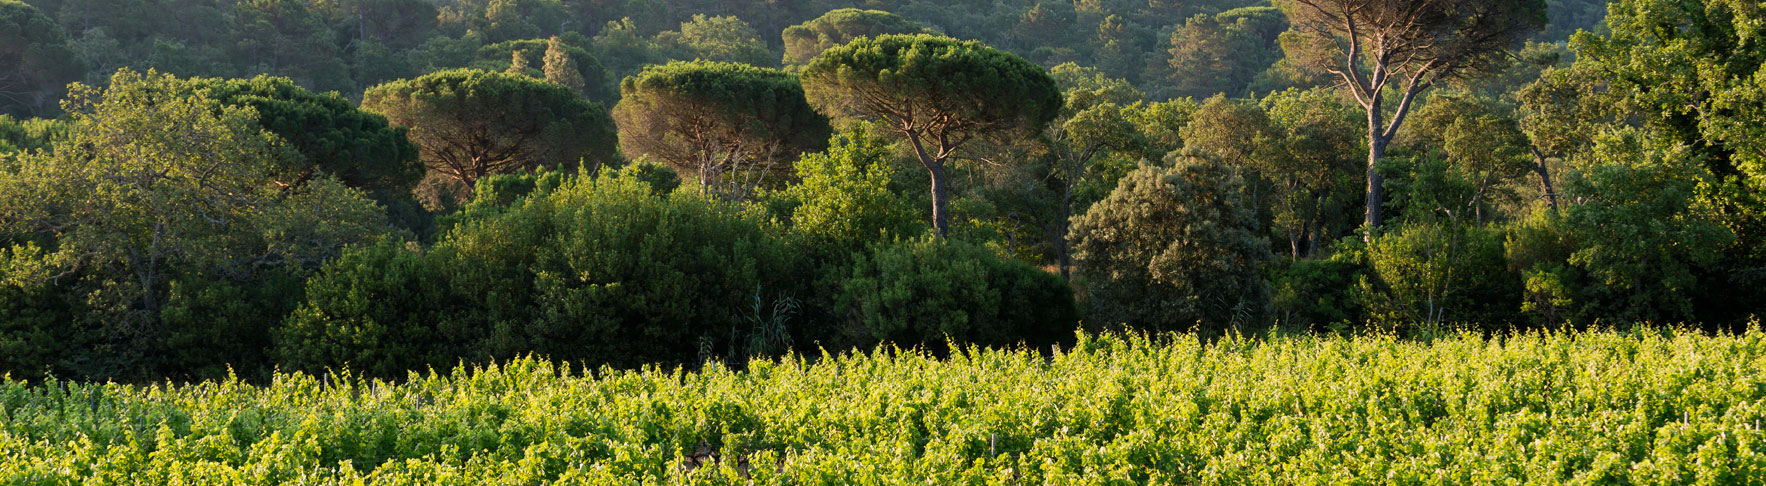 big trees behind green rows of grape growing on a mountain of barbeyrolles vineyard in France